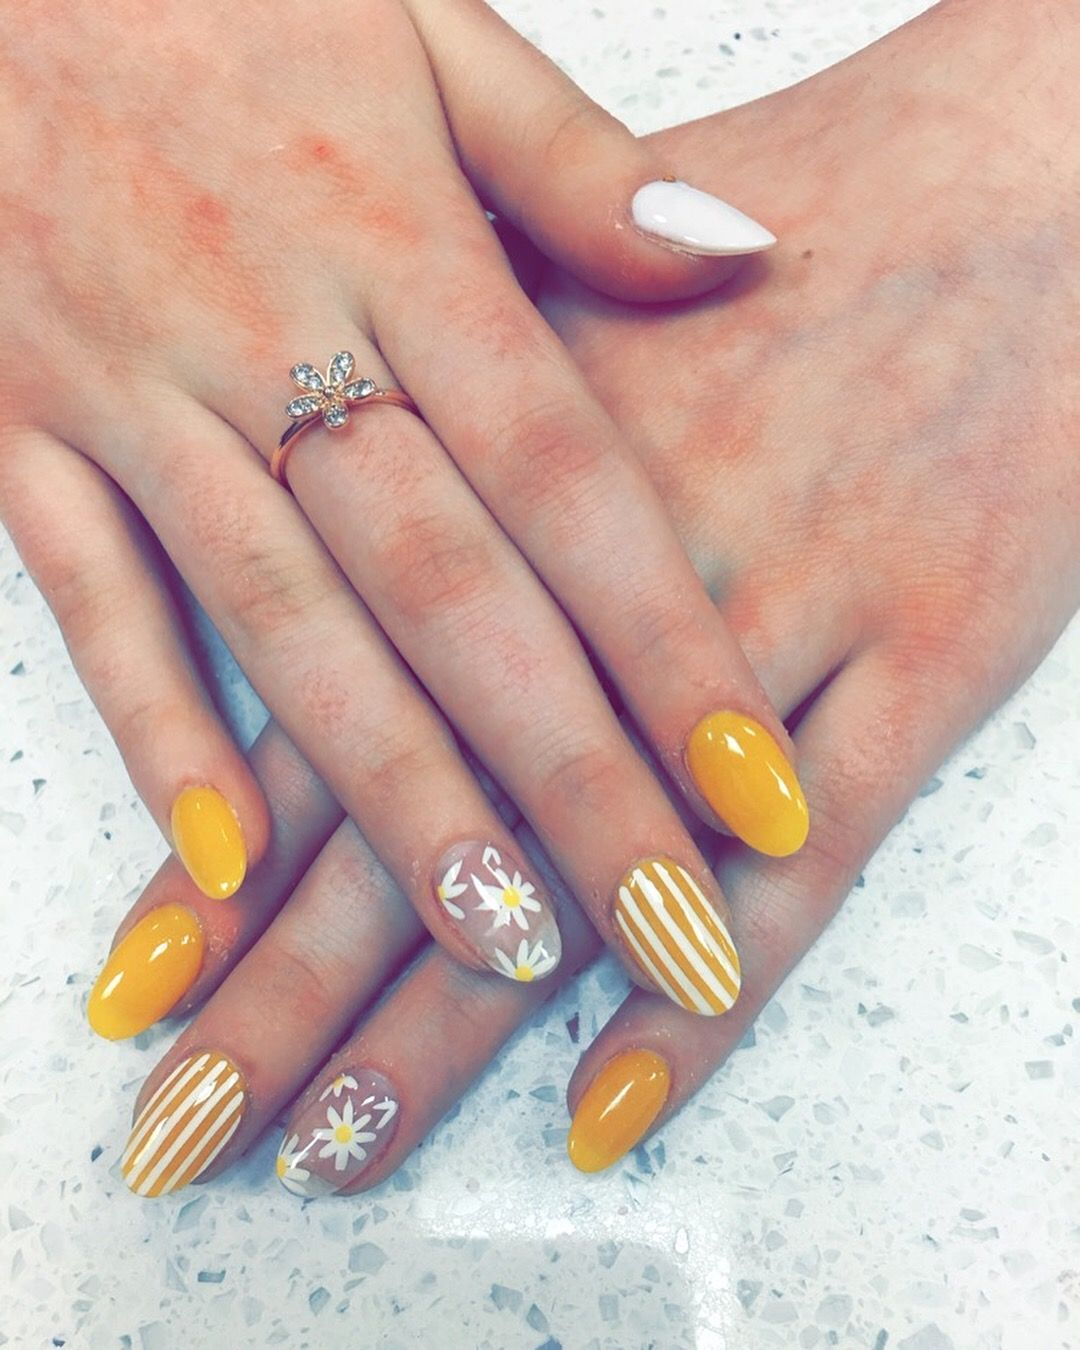 Schone Nagel Pin Von Christine K Auf Nails Nail Art Yellow Nails Und Yellow